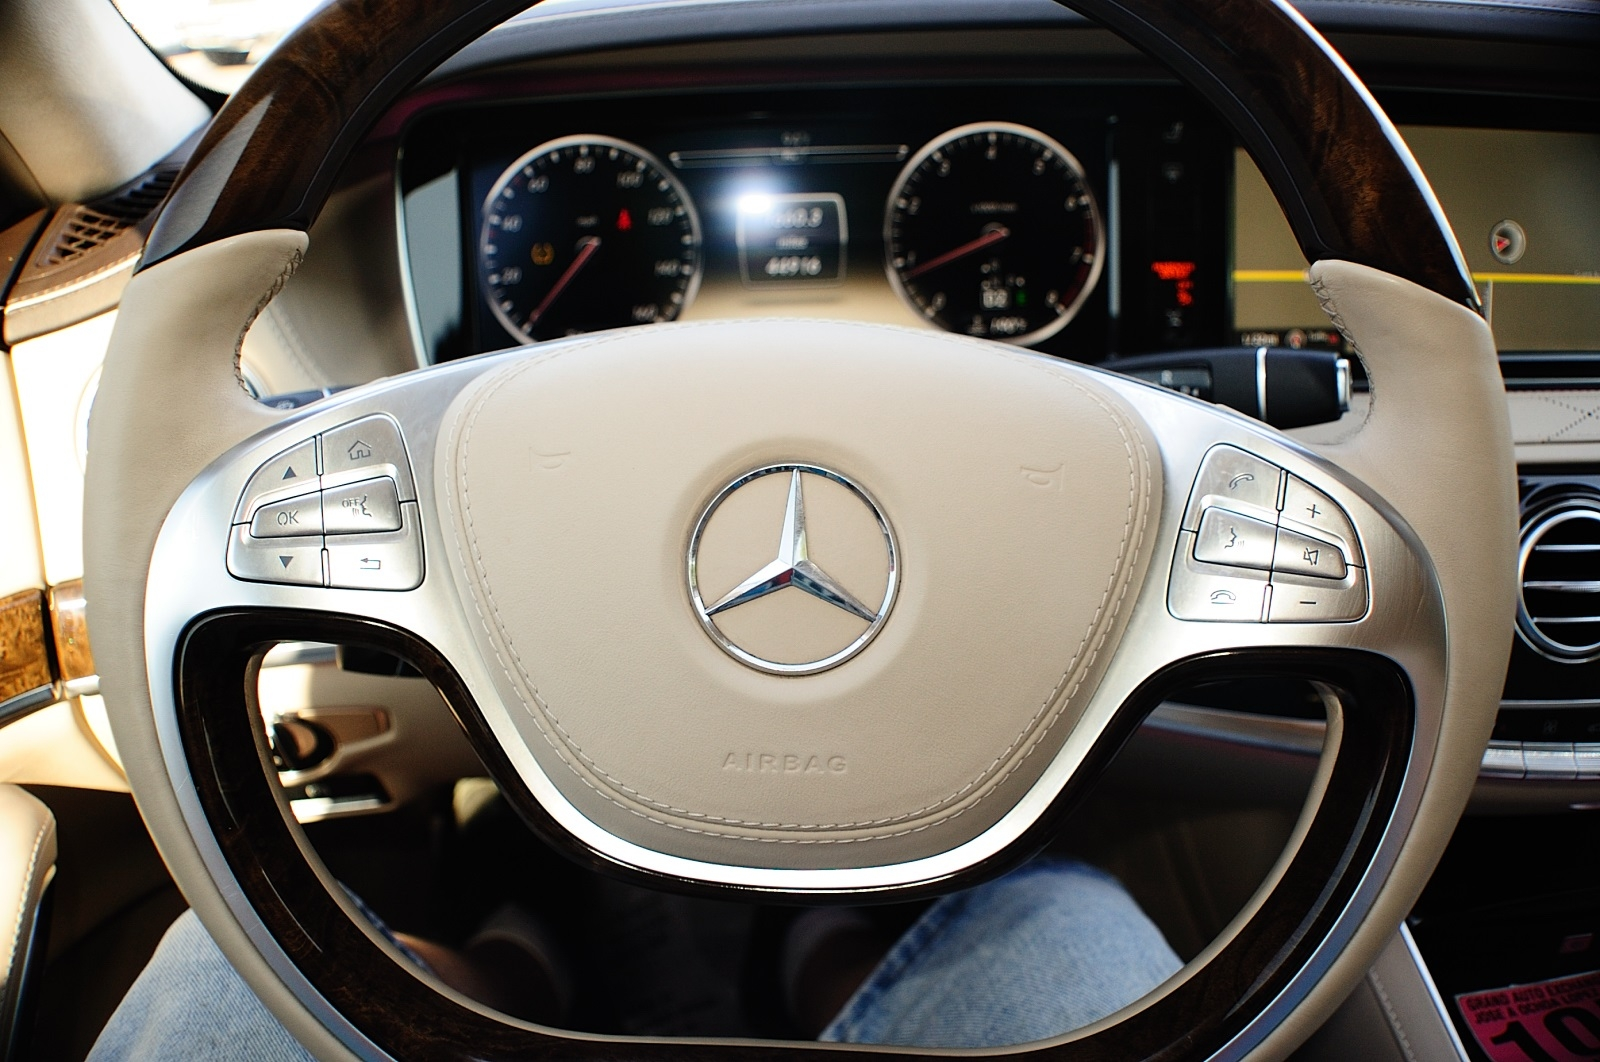 2014 Mercedes Benz S550 4Matic AWD Turbo White Sedan used car Sale Riverwoods Tower Lakes Vernon Hills